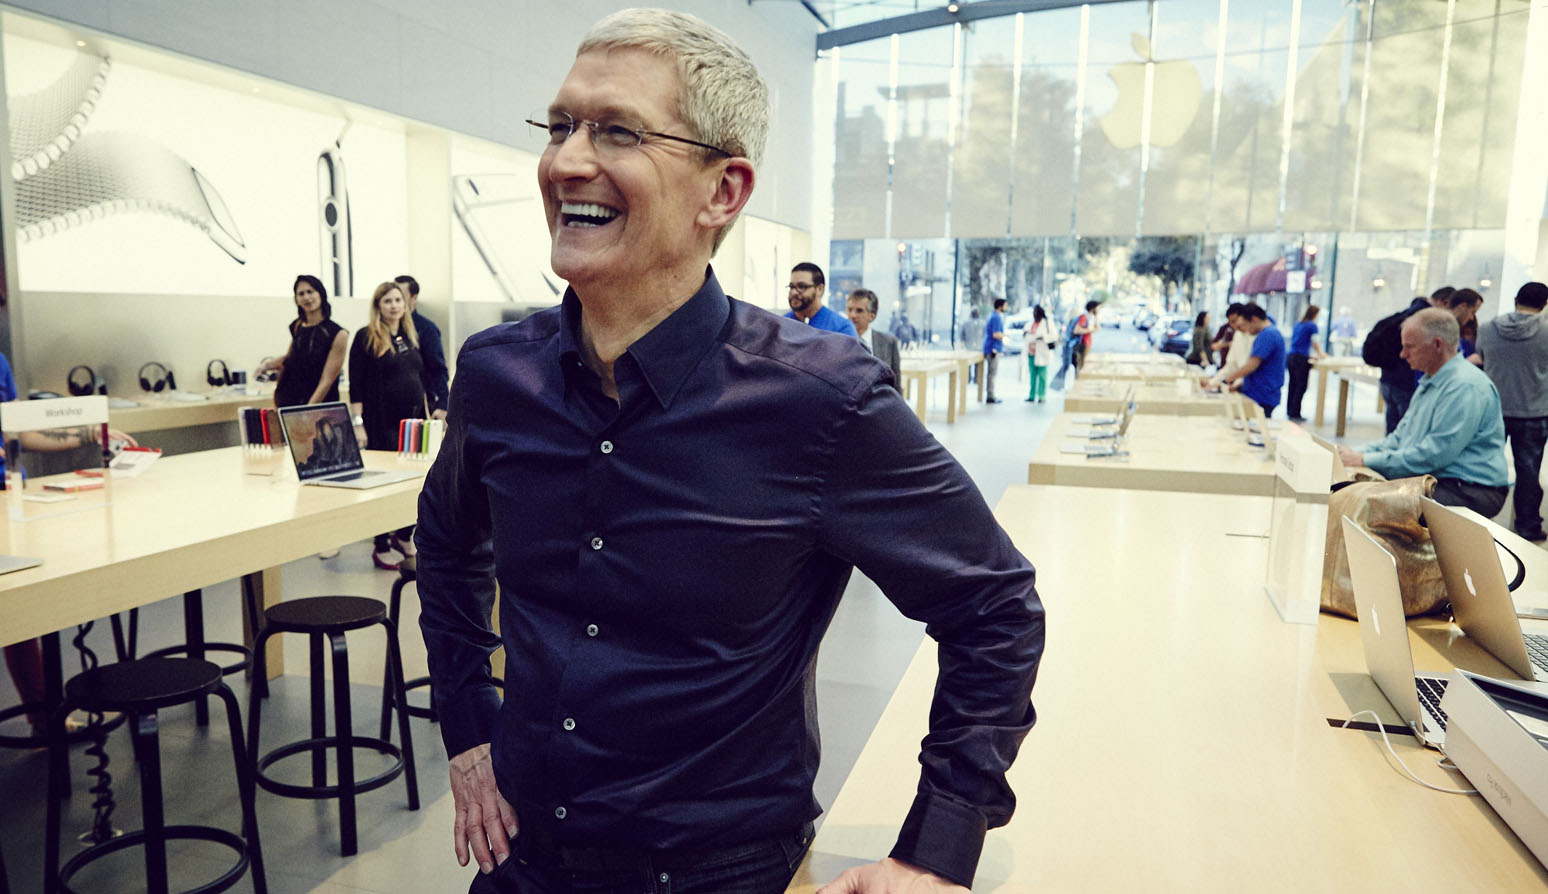 Cook in an Apple Store in Palo Alto.